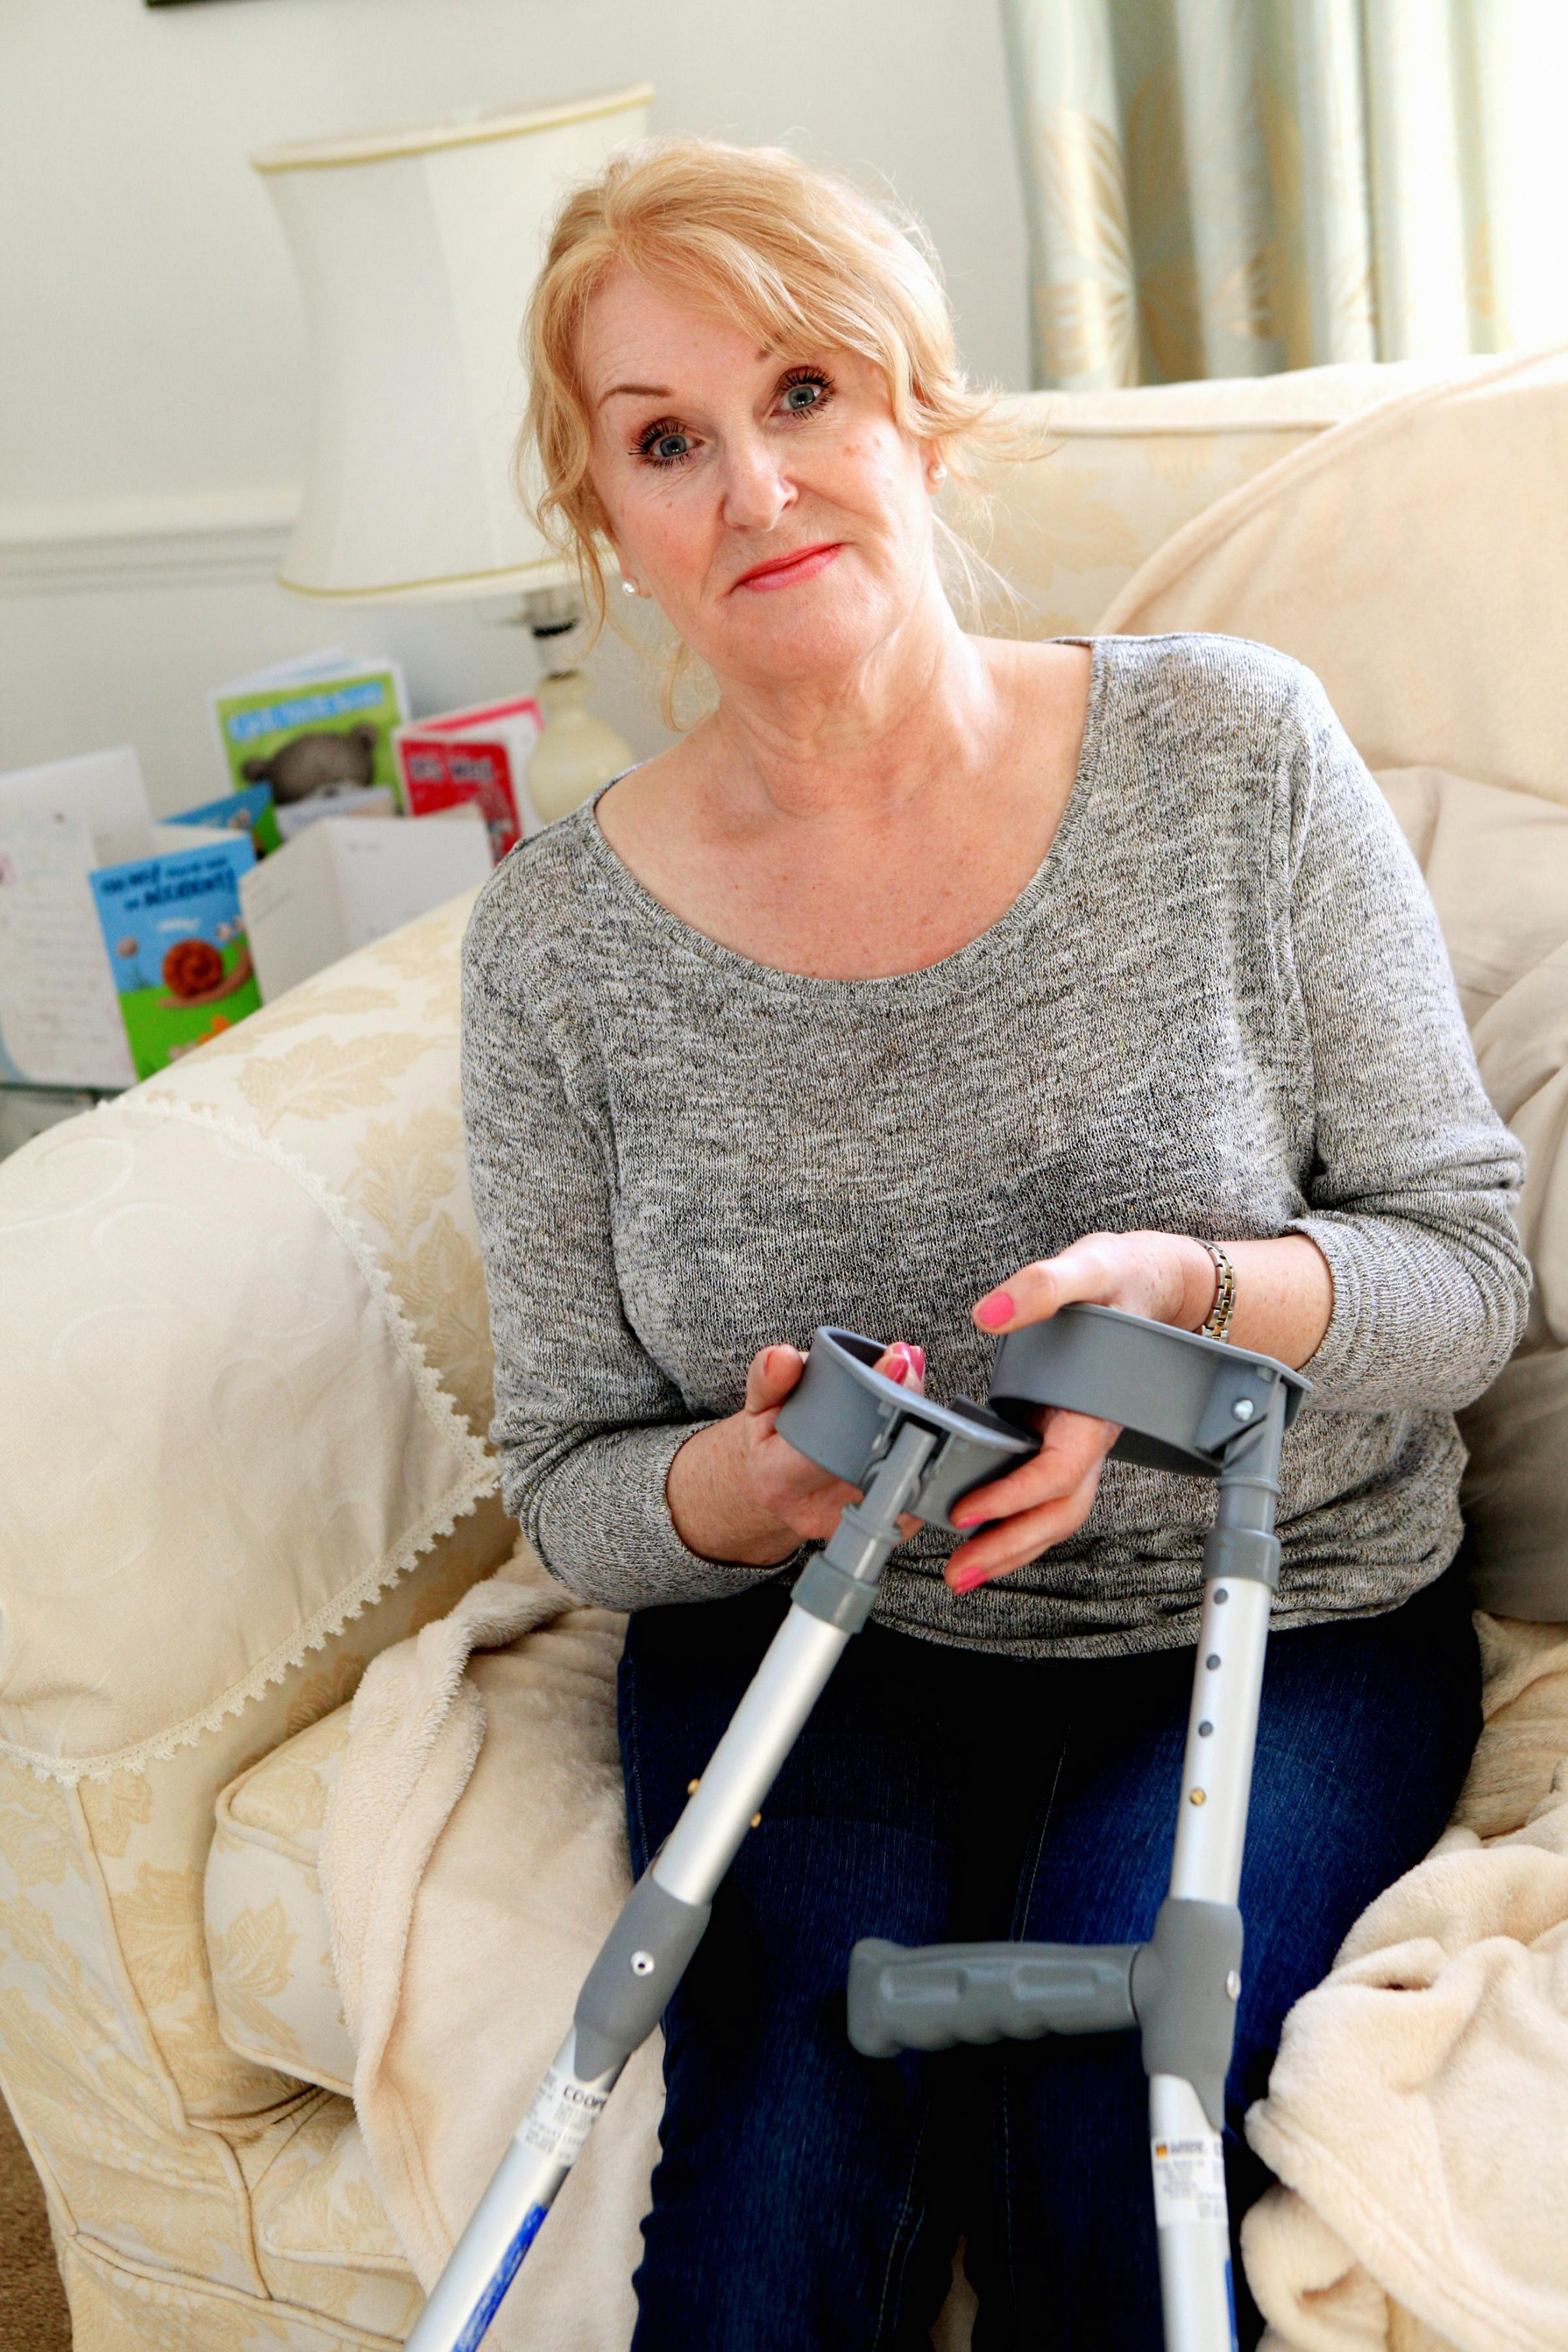 Carol Barton, who was told at Airedale Hospital that she had pulled a muscle but later l